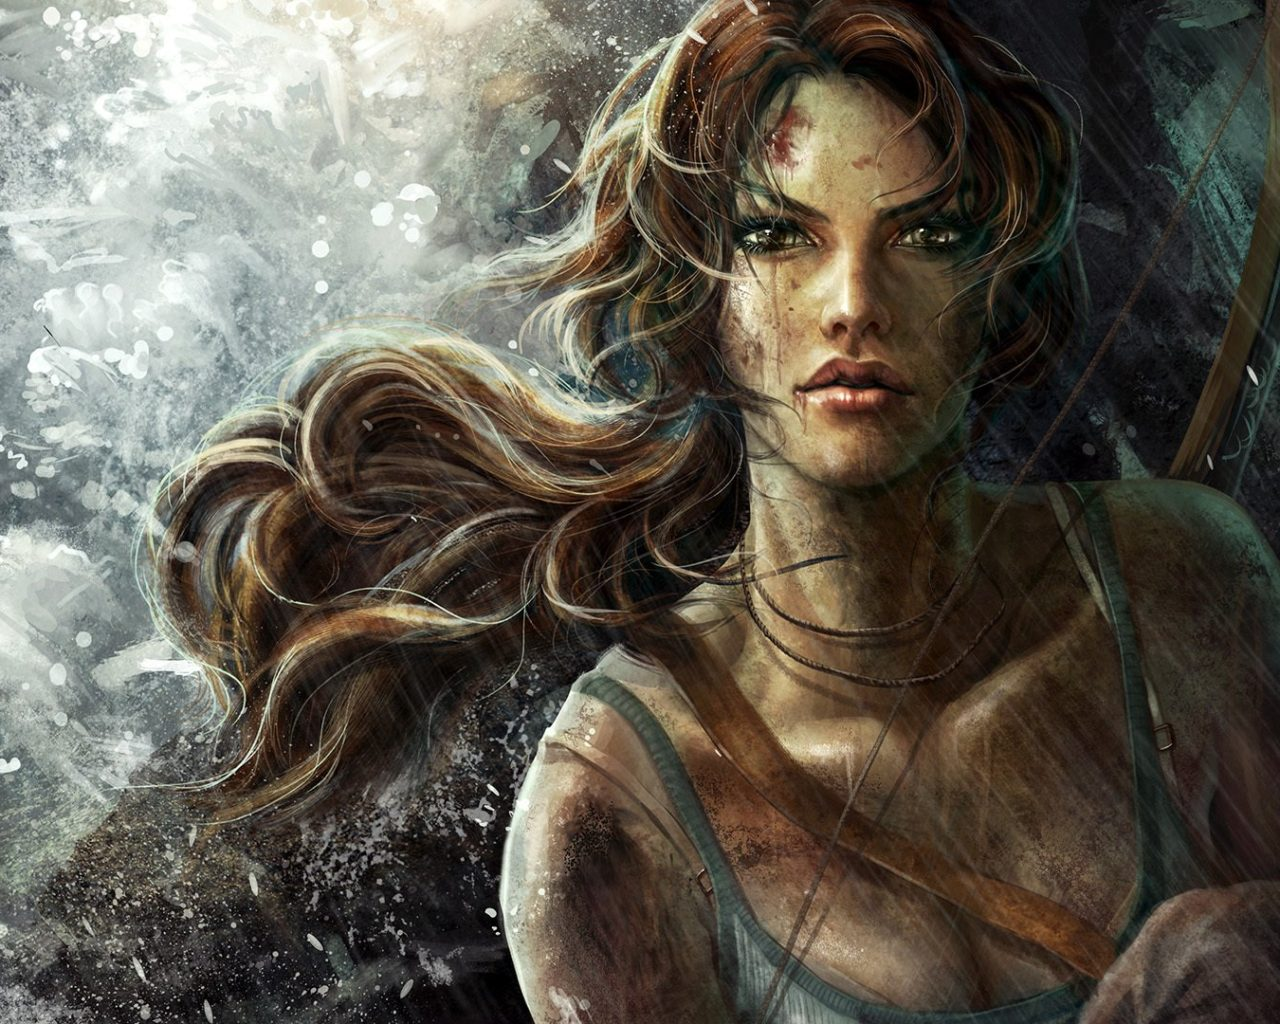 Android World Beautiful Girl Wallpapers Tomb Raider Action Adventure Lara Croft Fantasy 1920x1080